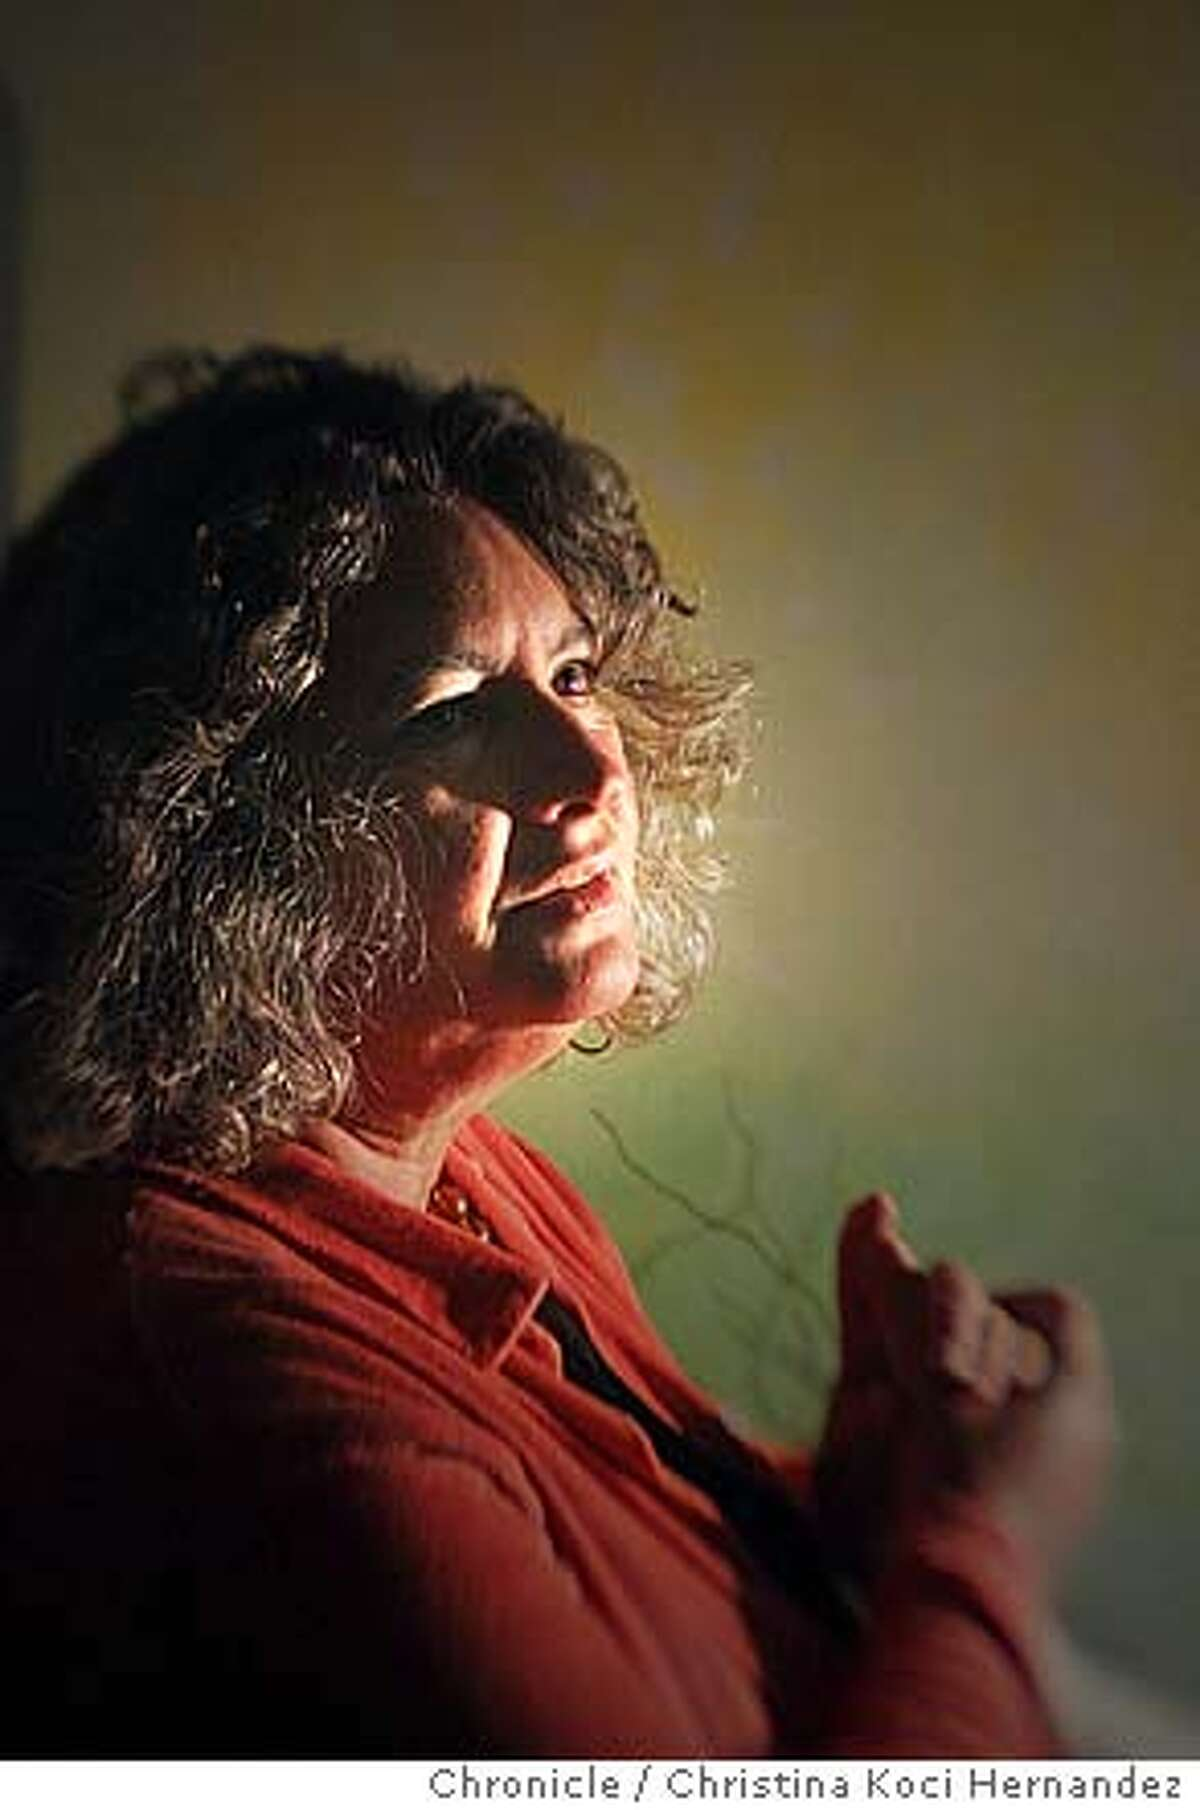 on Starhawk - a longtime witch, pagan, goddess, ecofeminist, political activist, and author of several books. A San Francisco institution, Starhawk lives part-time in a collective on Folsom Street with her housemates, the Black Cats. Our story will appear on Halloween... .CHRISTINA KOCI HERNANDEZ/CHRONICLE